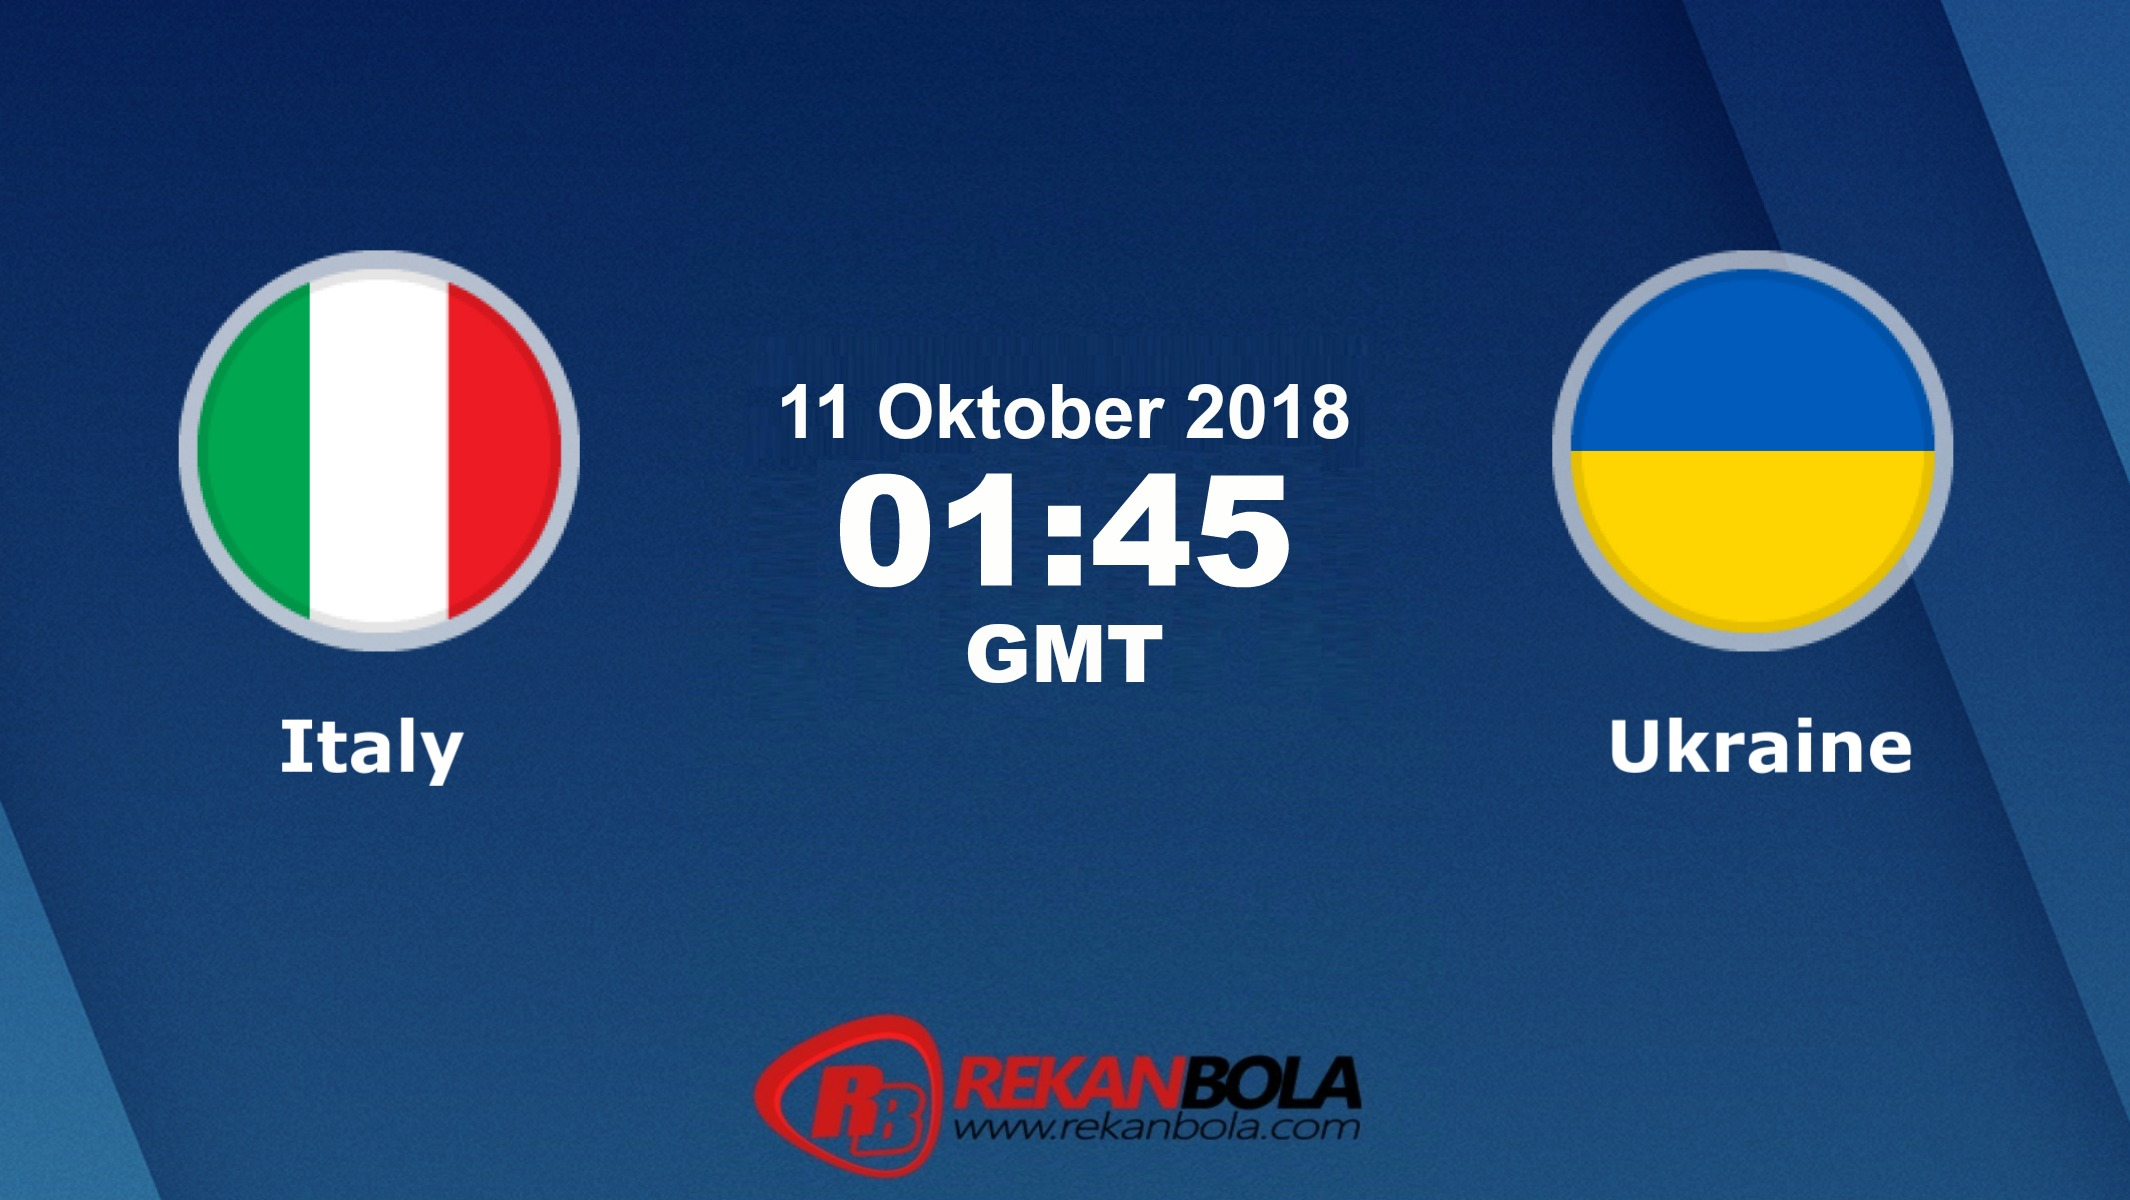 Nonton Siaran Live Streaming Italia Vs Ukraina 11 Oktober 2018